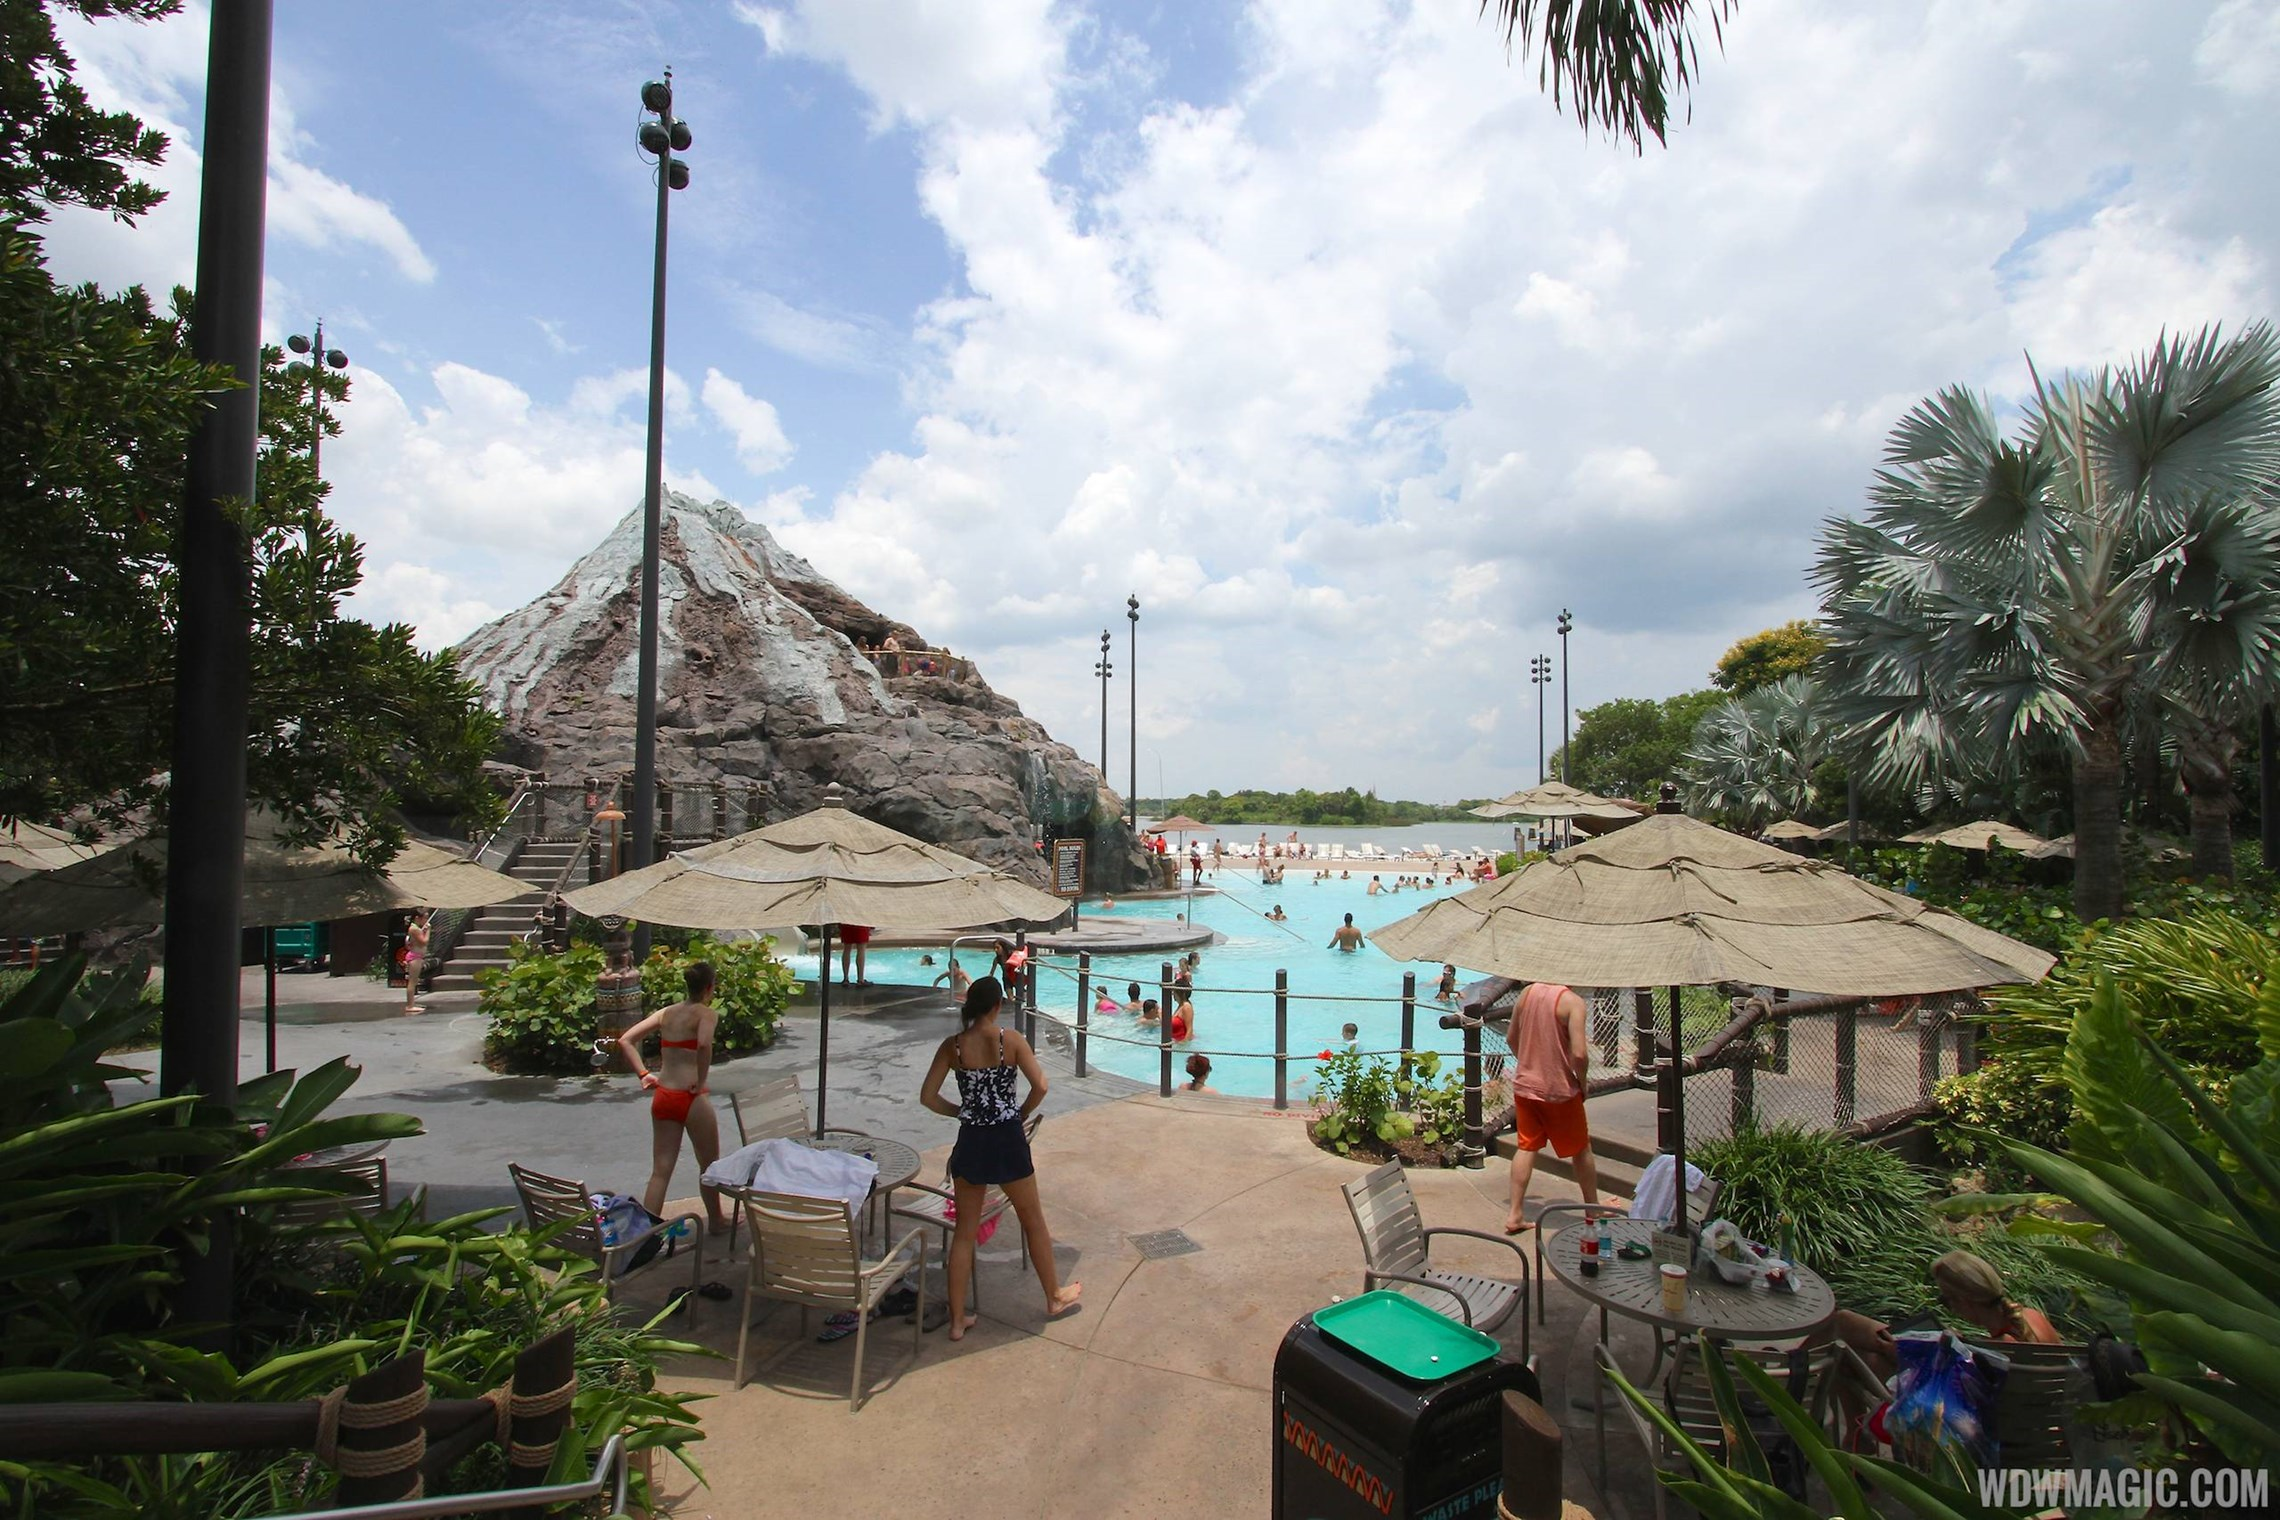 Pool area at Disney's Polynesian Resort before 2014 remodel